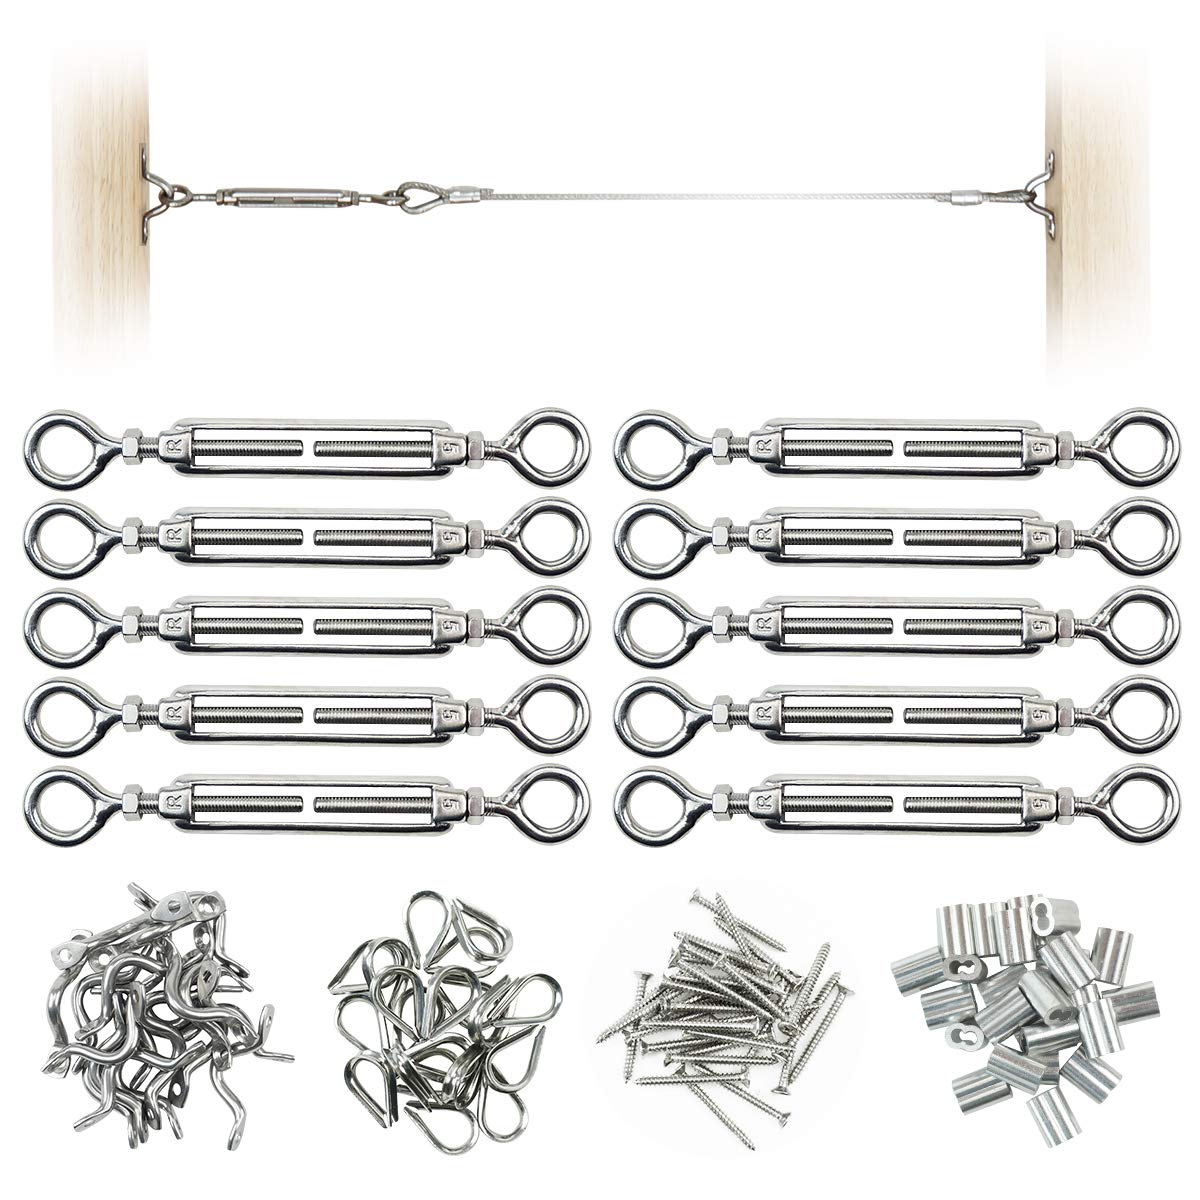 """Muzata 10 Pack Heavy Duty Stainless Steel Cable Railing Kits For 1/8"""" Cable, DIY Balustrade Kit withwith Eye-Eye Turnbuckles, Thimbles (Ferrules), Eye Straps, Swages and Self Tapping Screws"""